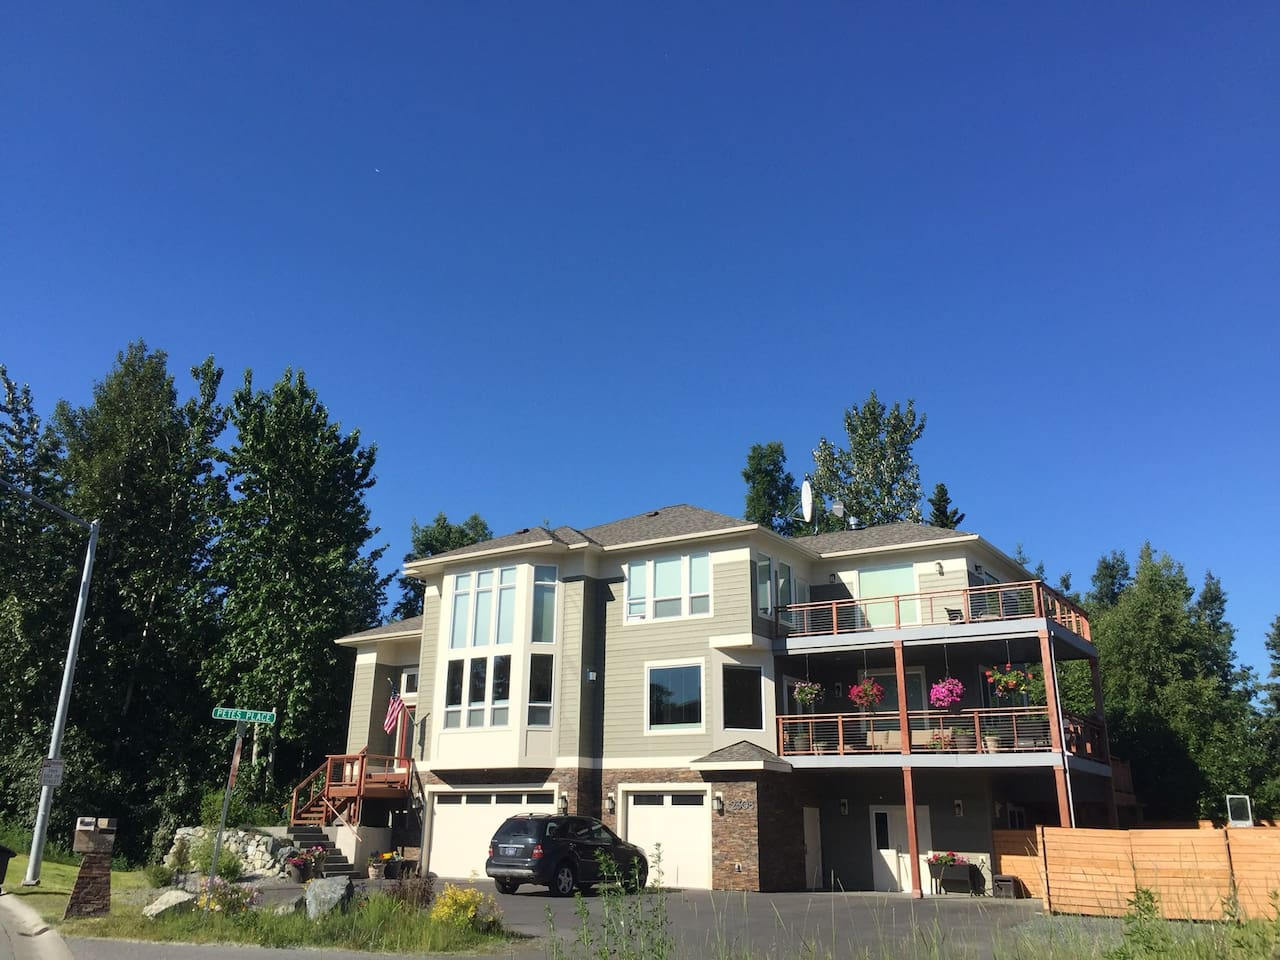 Stay in the Guest Apartment in a new custom home on the Anchorage Coastal Trail.